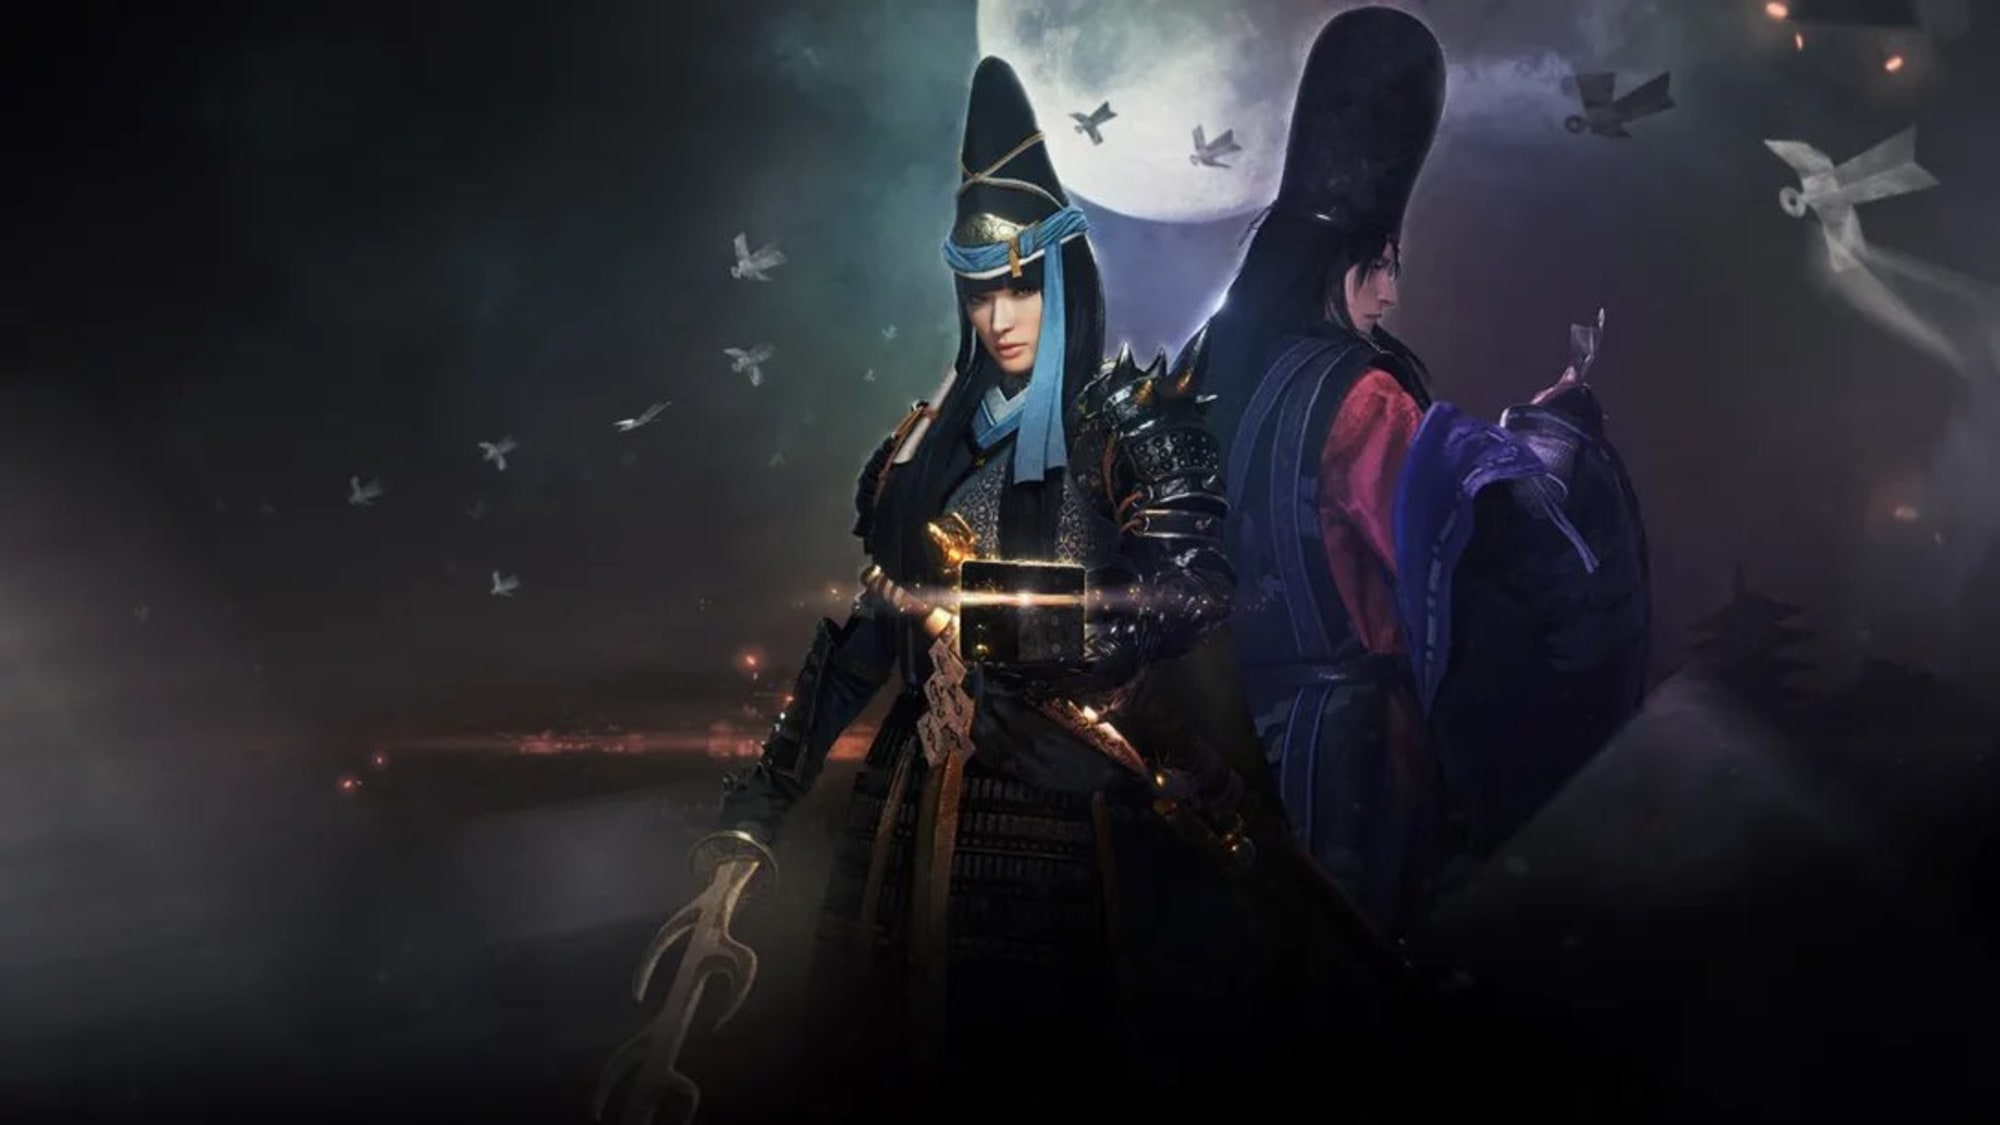 Nioh 2 Darkness in the Capital review: The grind continues